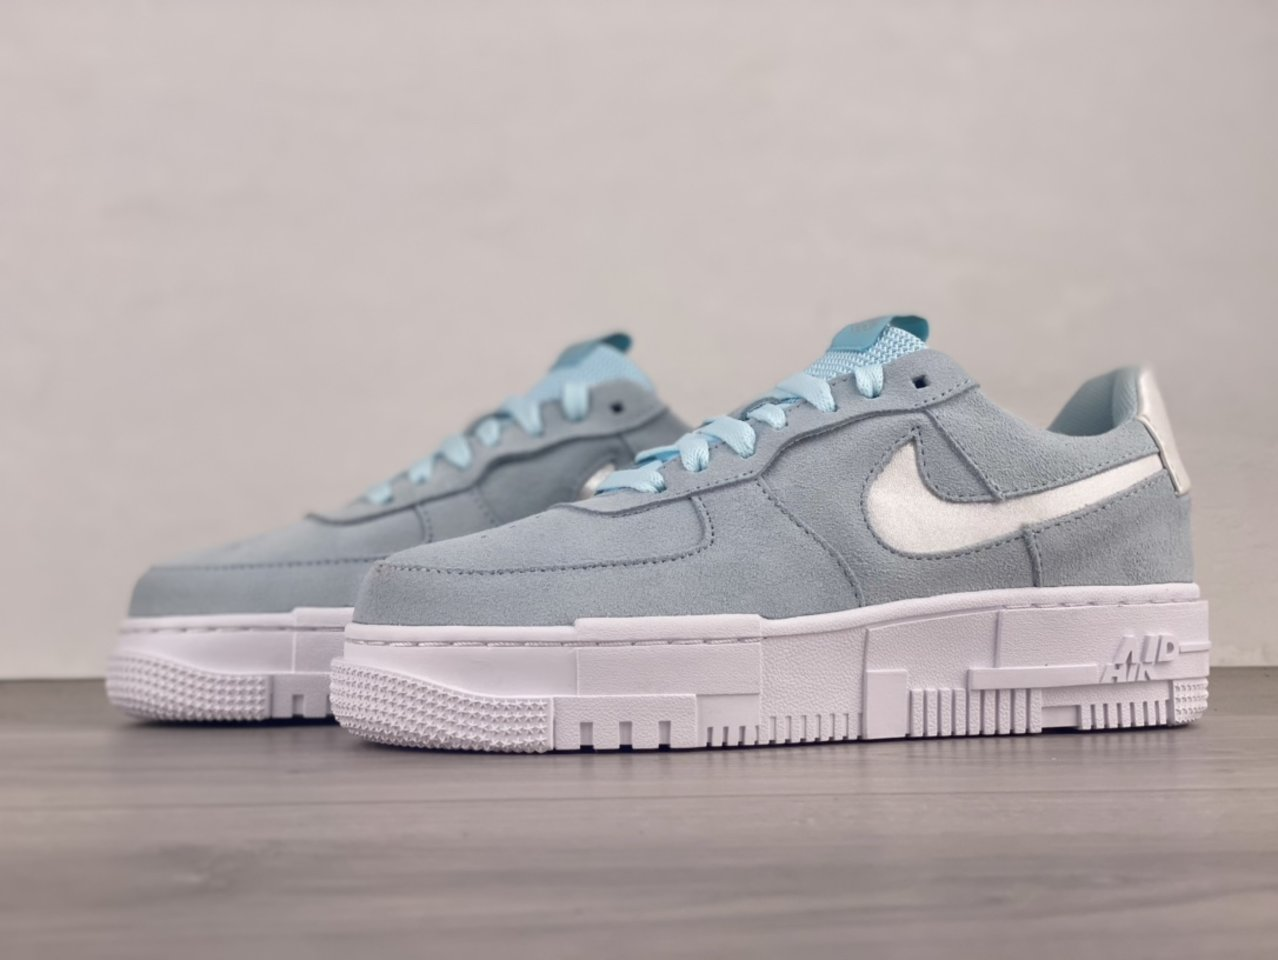 Nike Air Force 1 Pixel Glacier Blue Casual Shoes DH3855-400 side